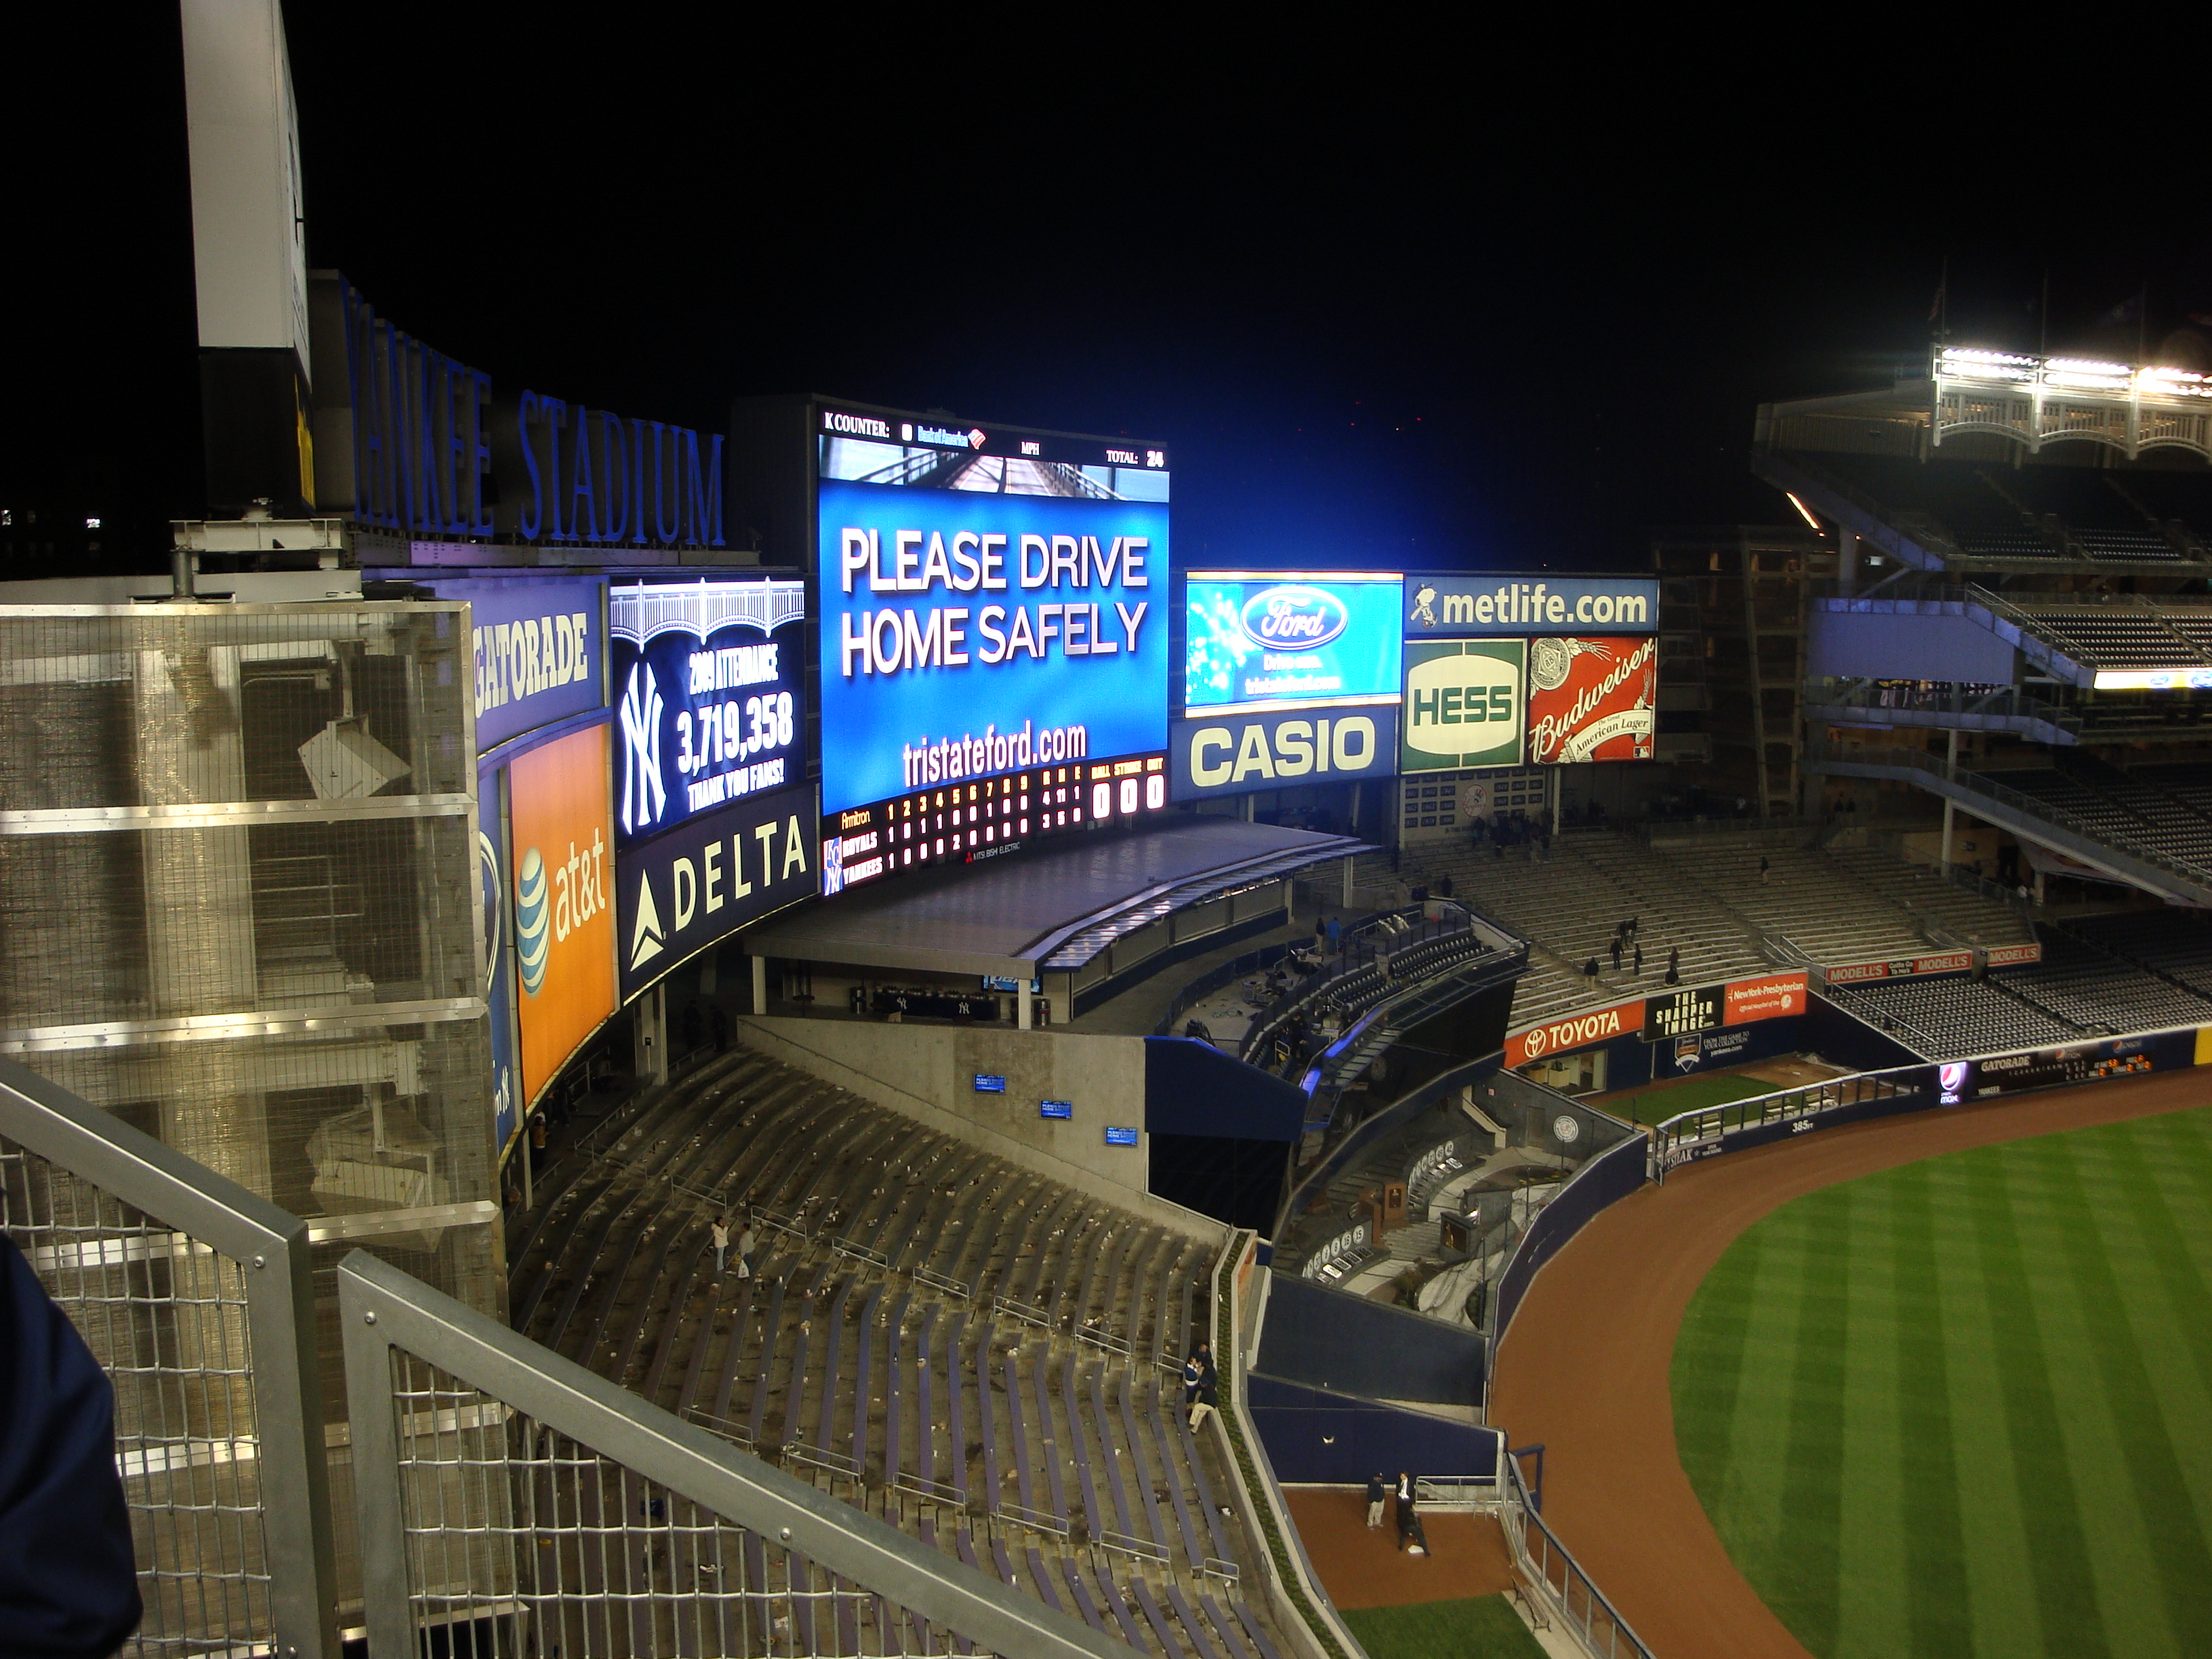 If you look closely you can see the entire year's attendance on the scoreboard to the left of the giant one in center, it displays 3,719,358. That is a lower total attendance than the past few years, but what can you expect with this economy and the higher ticket prices.